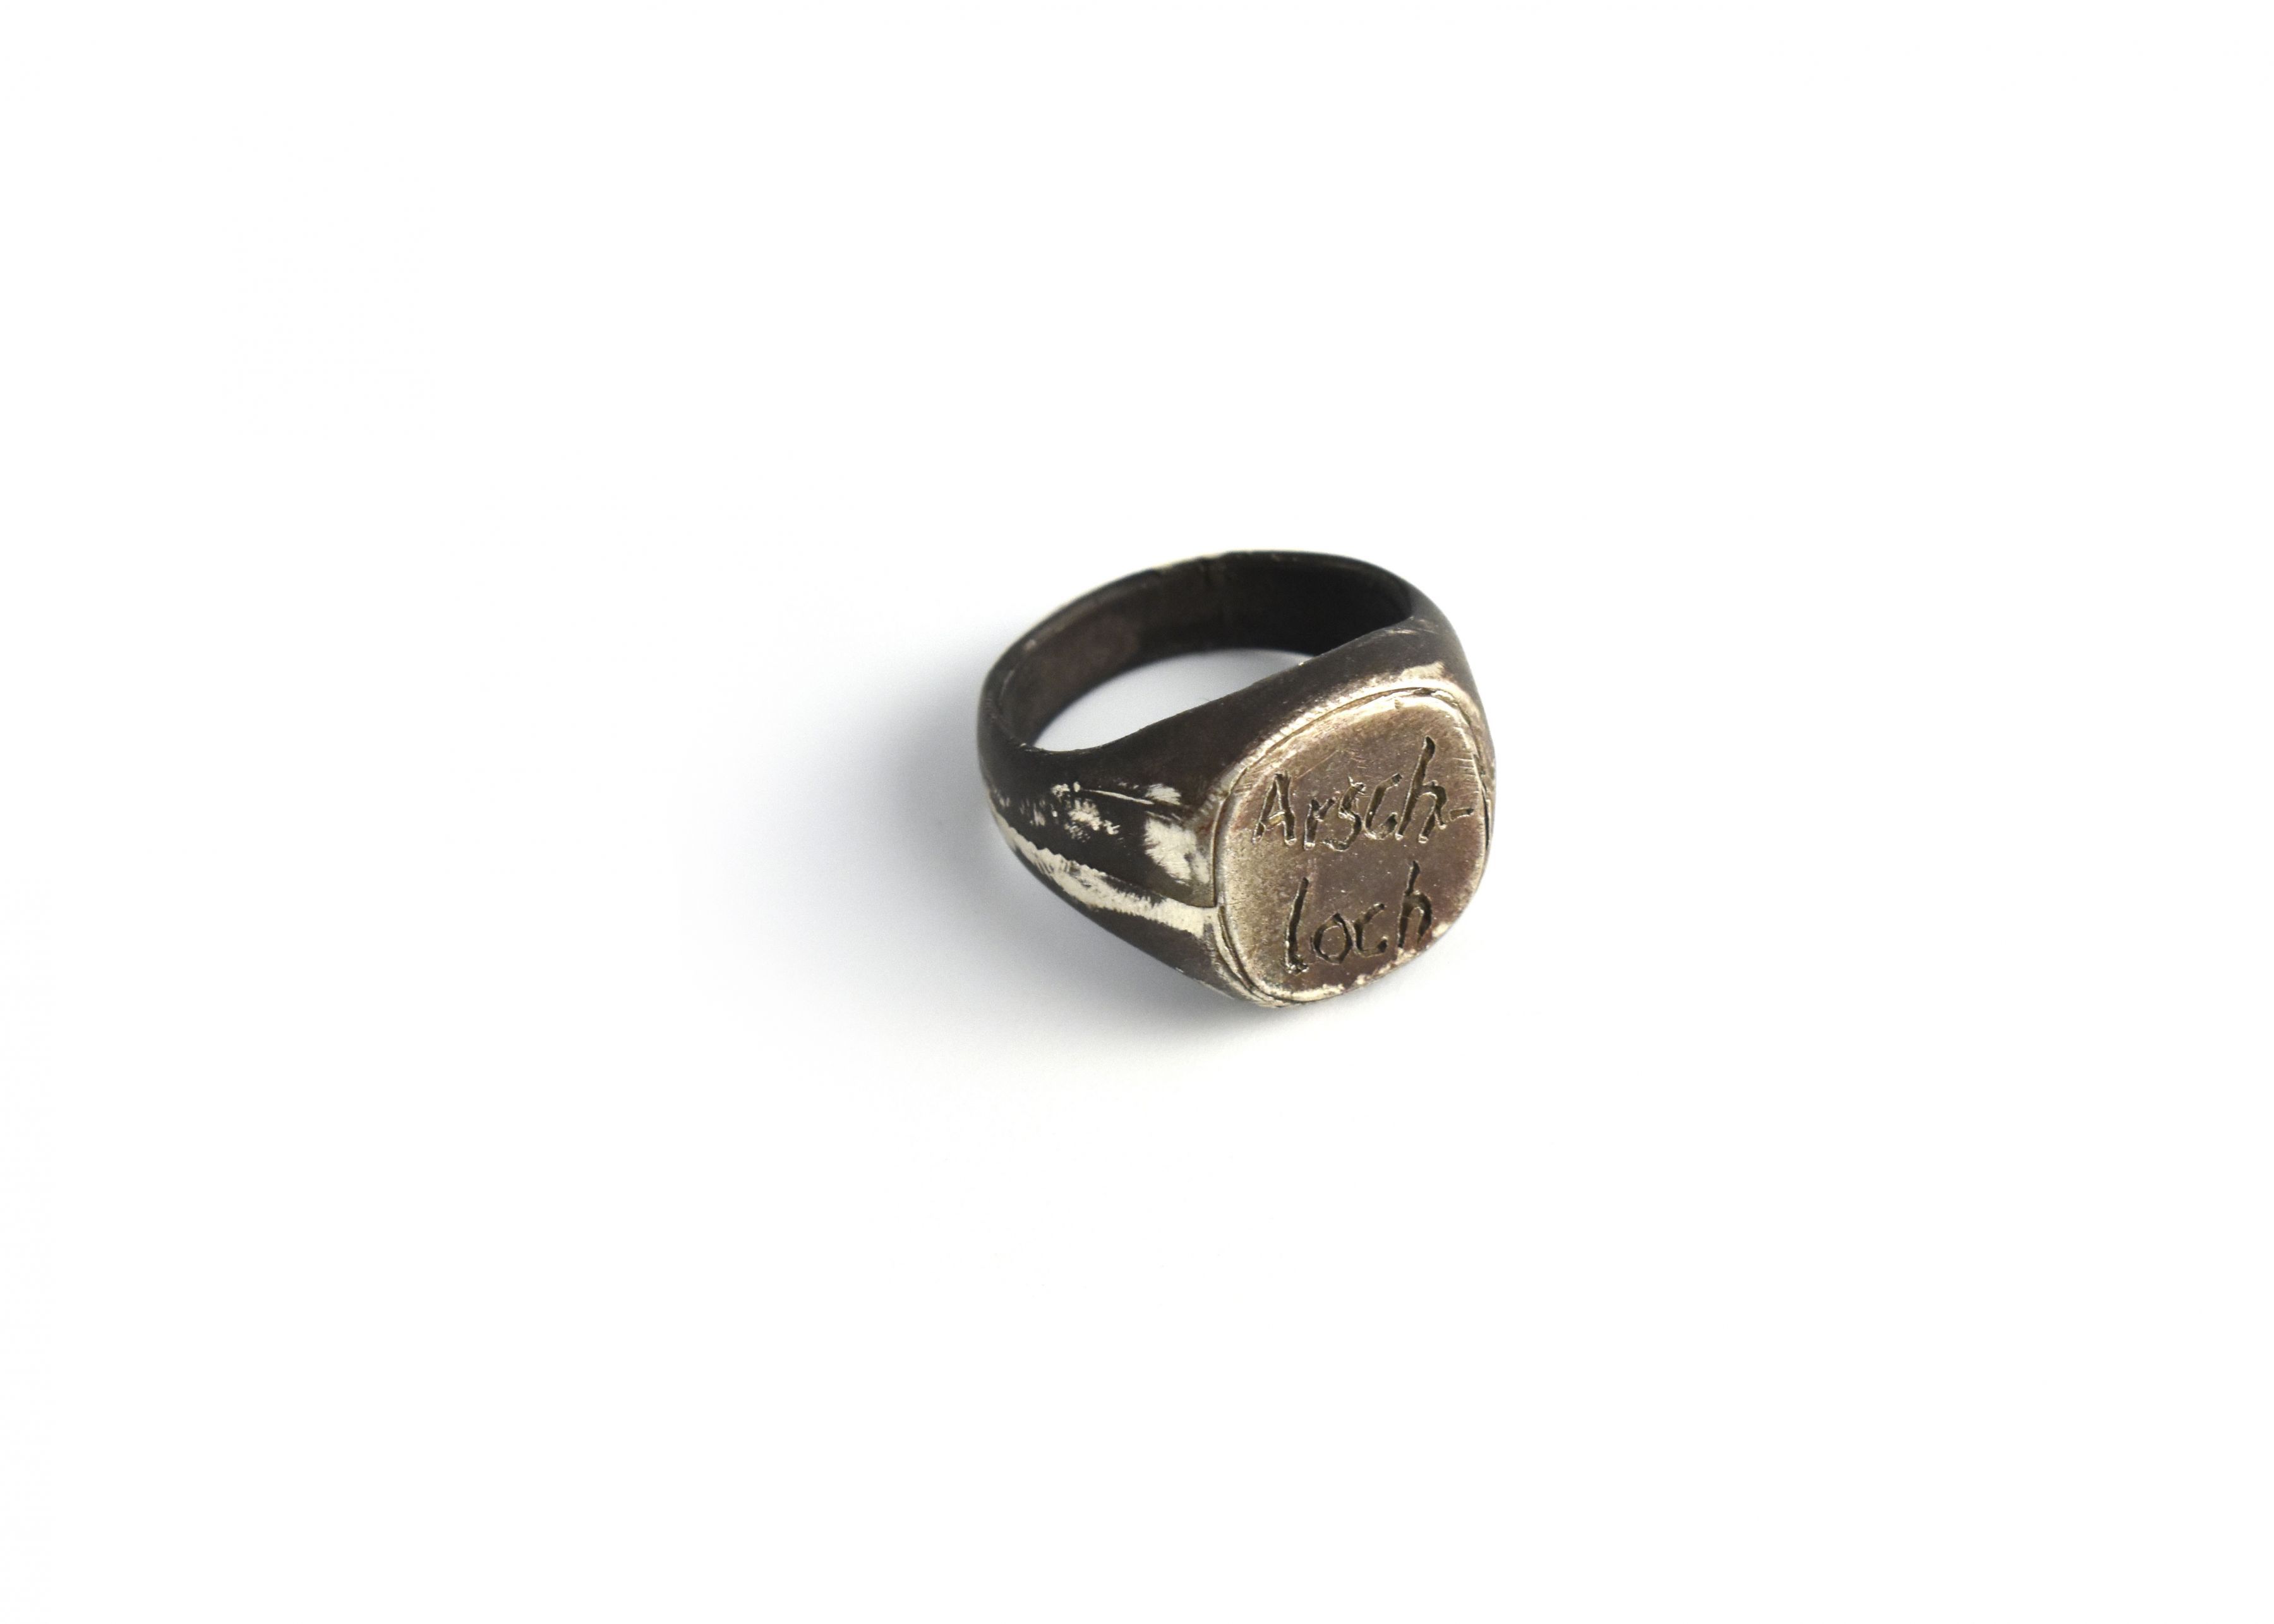 Karl Fritsch, ring, German, Contemporary Jewelry, #Karlfritschrings,